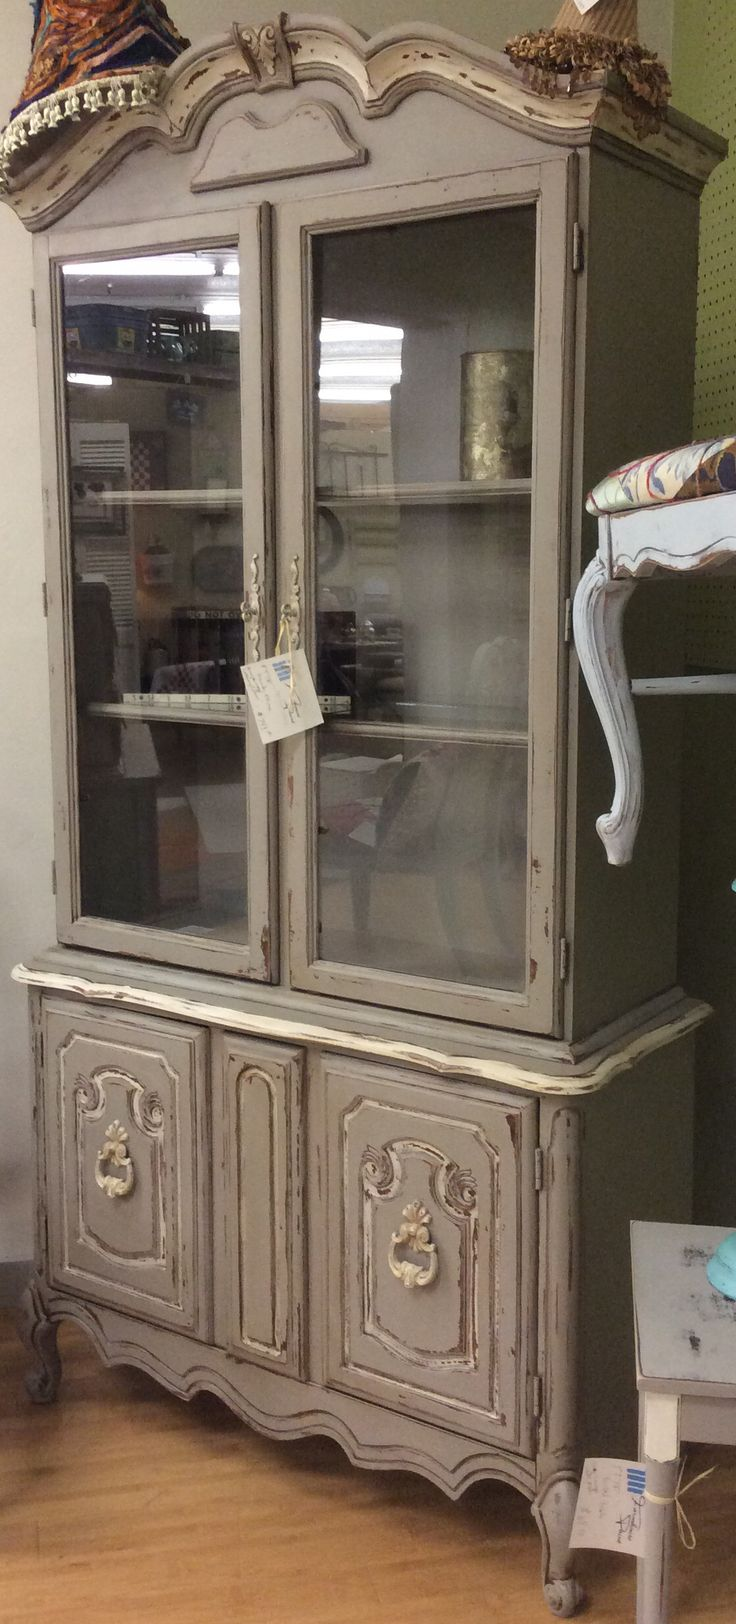 French china cabinet in Grey Limoge and White Ash Farmhouse Paint.  Aged perfectly with Farmhouse Paint Tea Stain Antiquing Gel.  #farmhousepaint #singlestep #noprep #nowax